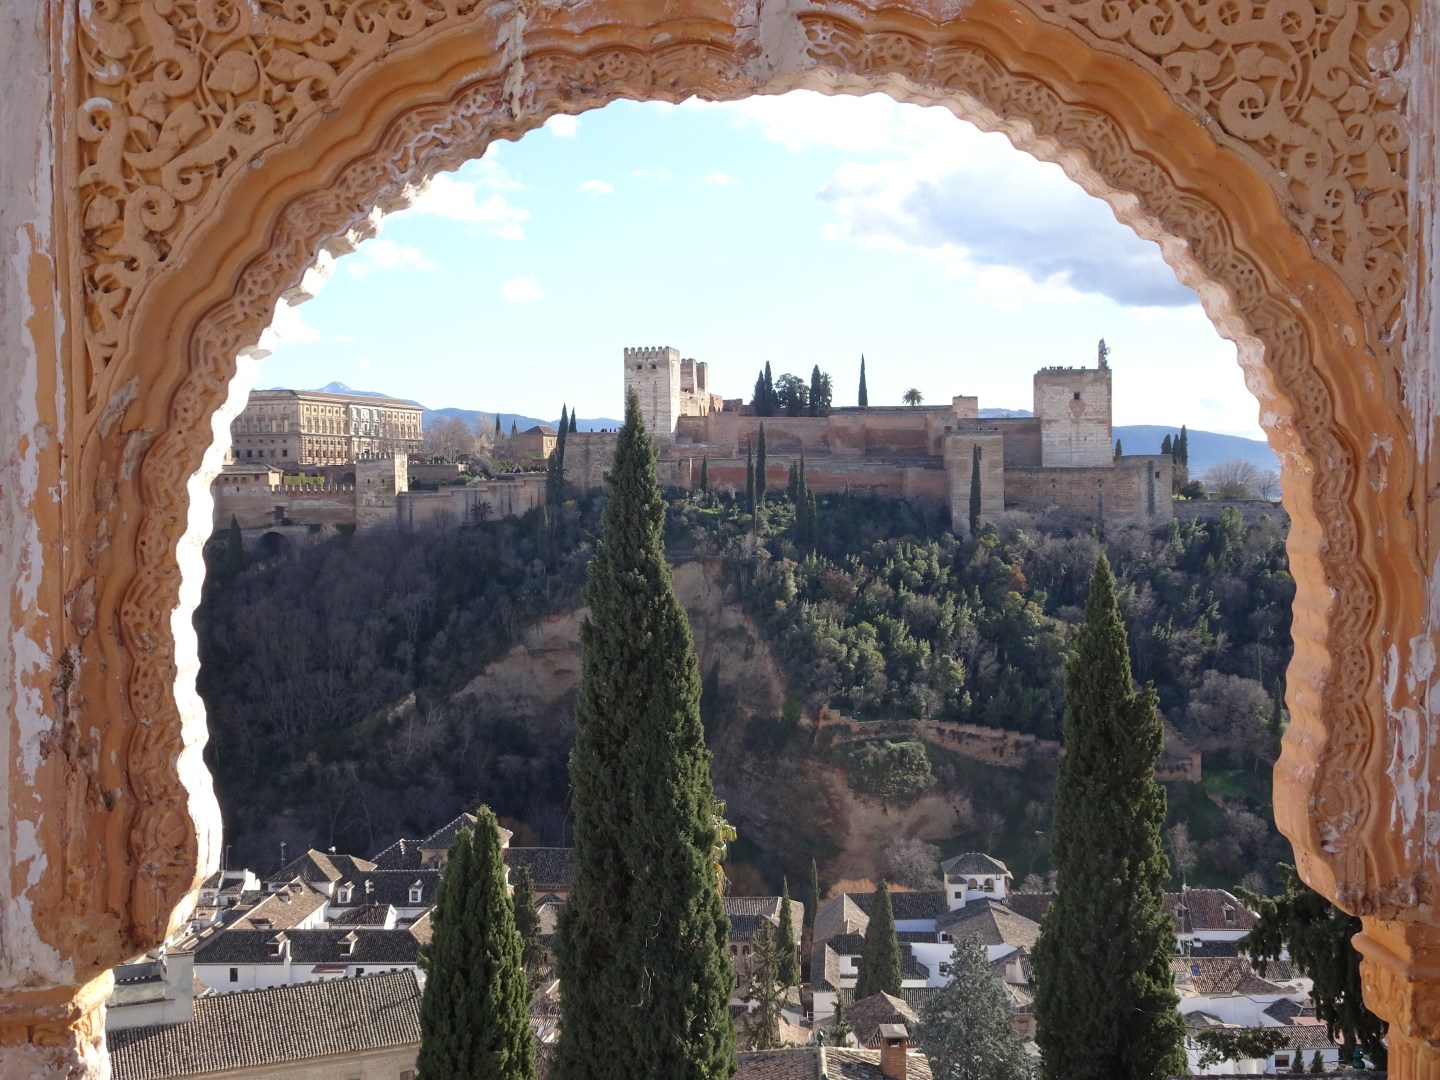 A view of the syunning Alhambra in Granada, Spain